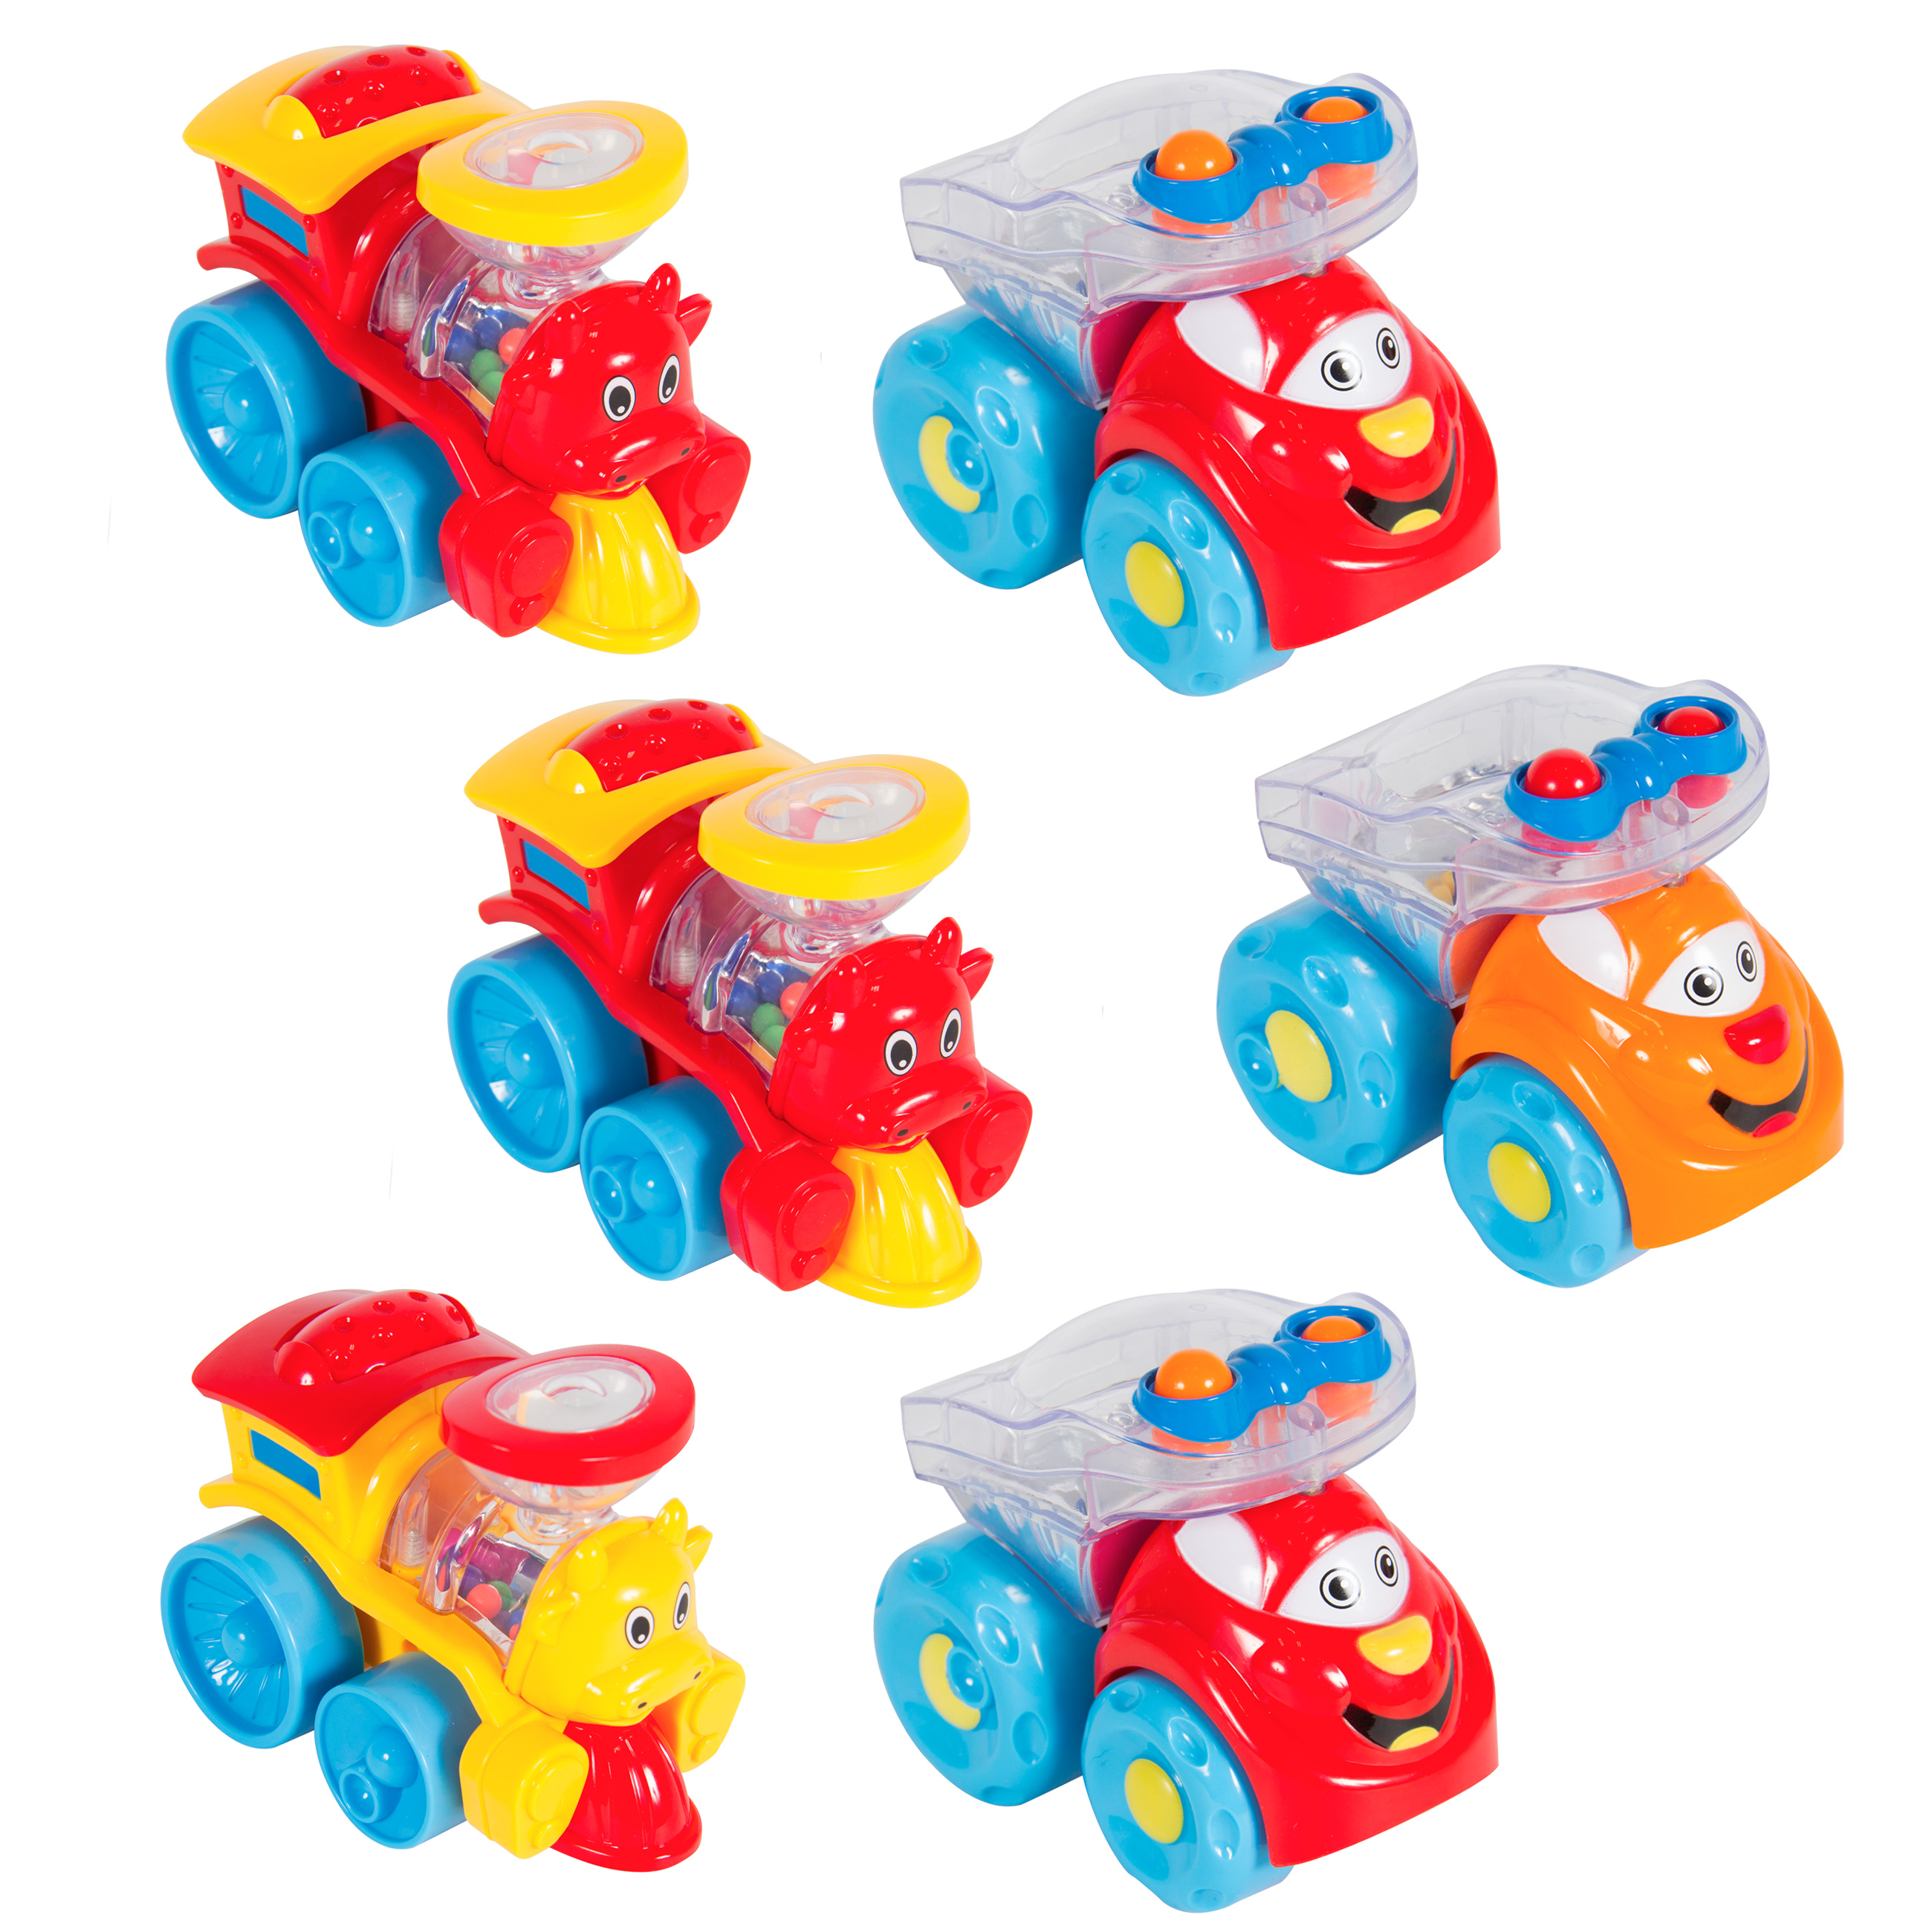 Best Choice Products Set of 6 Wind Up Rattle Toy Cars and Trains Multicolor by Best Choice Products